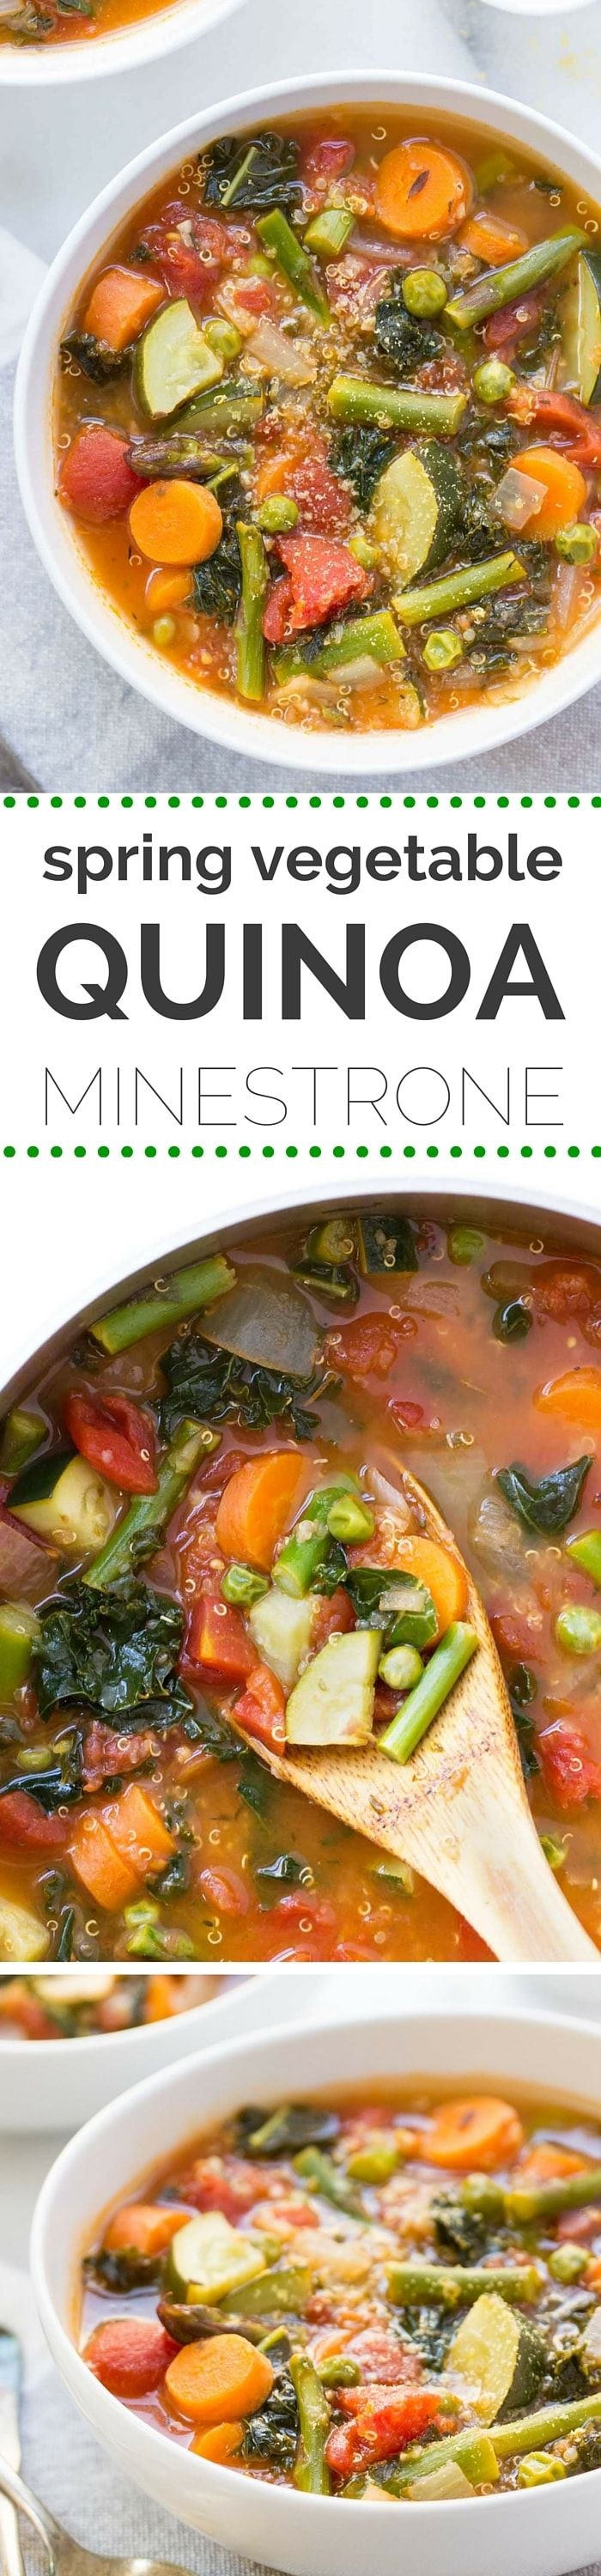 Need a quick weeknight meal? Try this QUINOA MINESTRONE! It's power packed, healthy and super easy to make! [vegan]